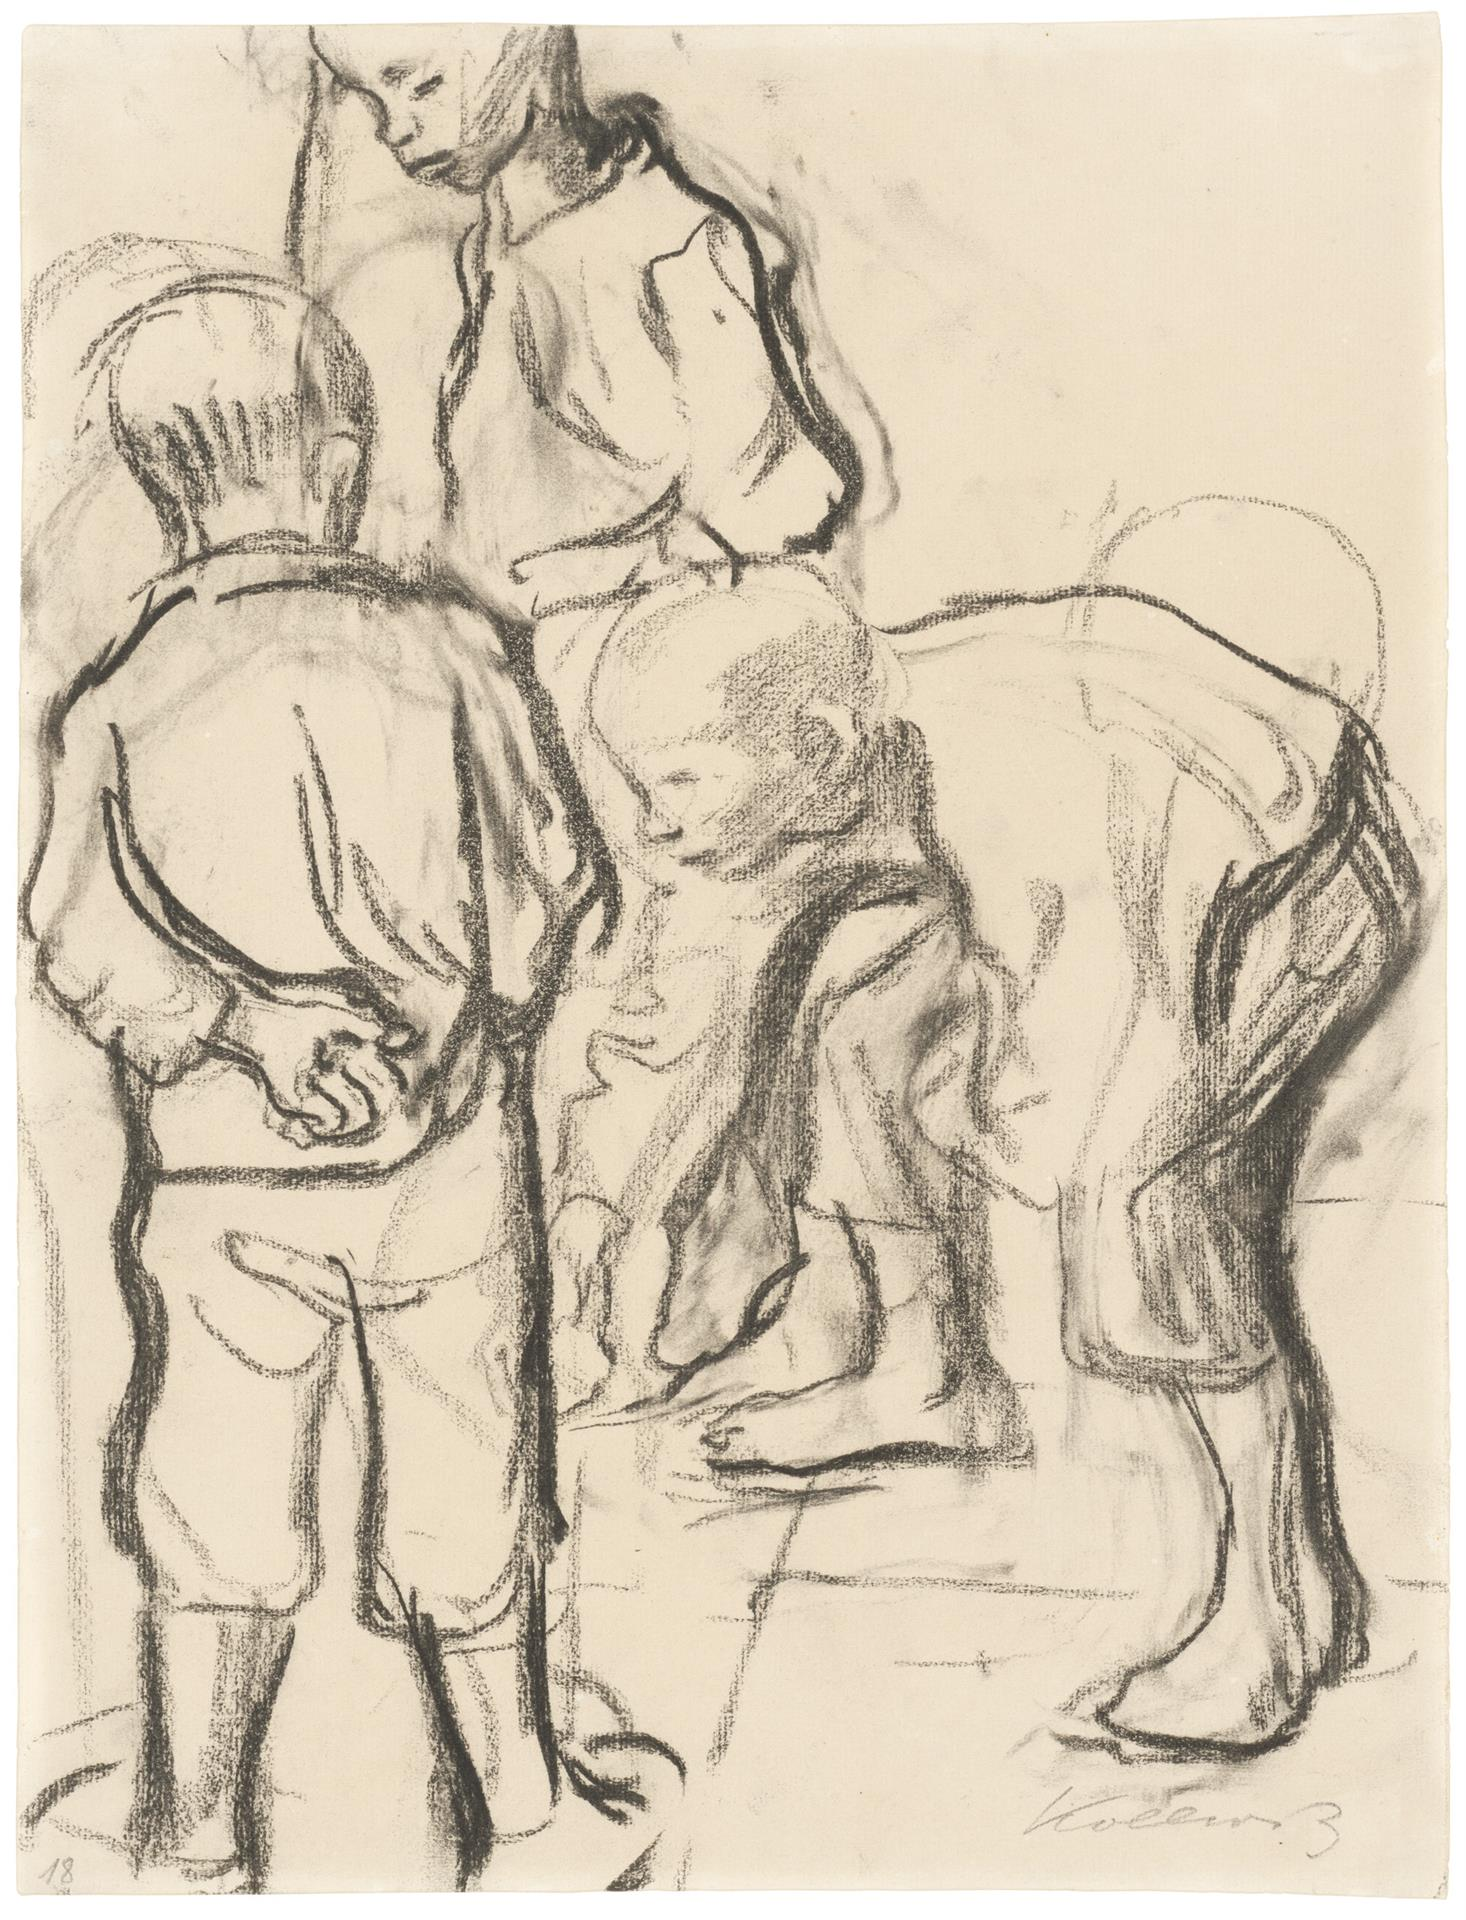 Käthe Kollwitz, Three Boys playing Marbles, 1909/1910, black chalk, NT 582, Cologne Kollwitz Collection © Käthe Kollwitz Museum Köln